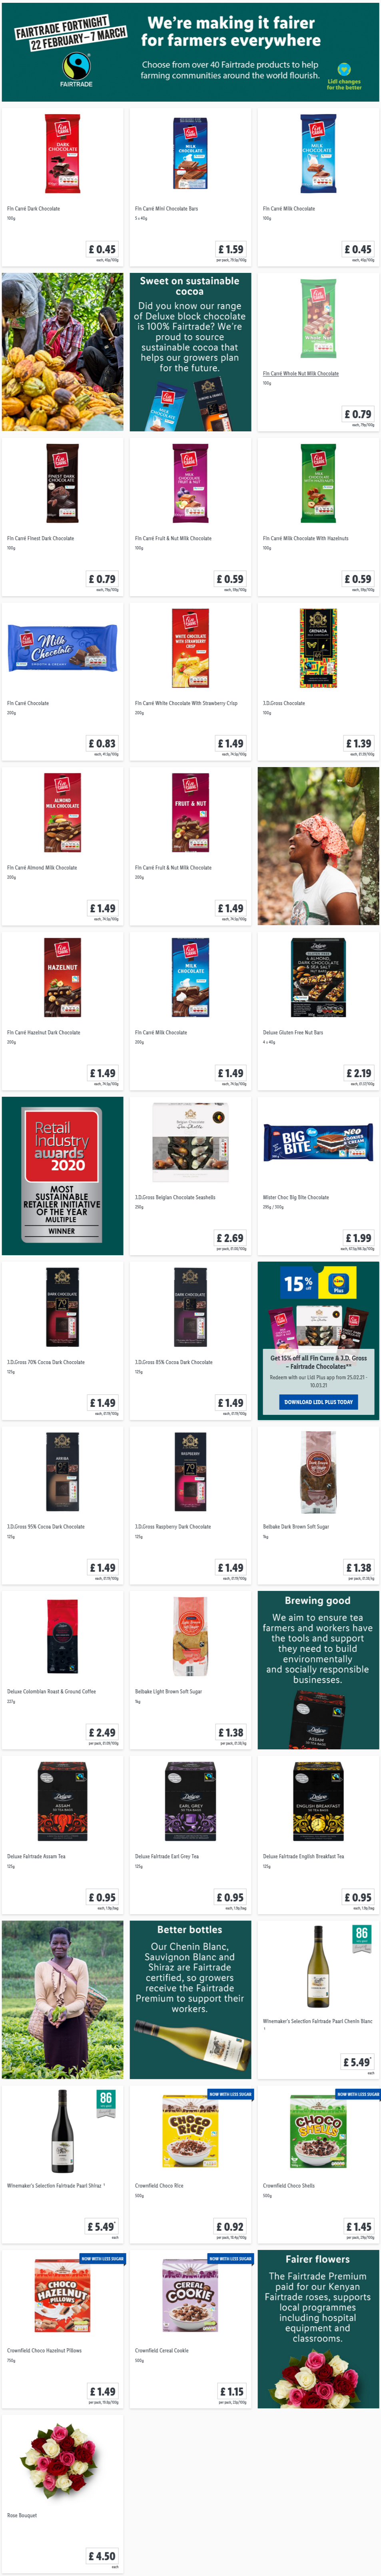 Shop Fairtrade Fortnight Offers at Lidl From Sunday, 31st January 2021